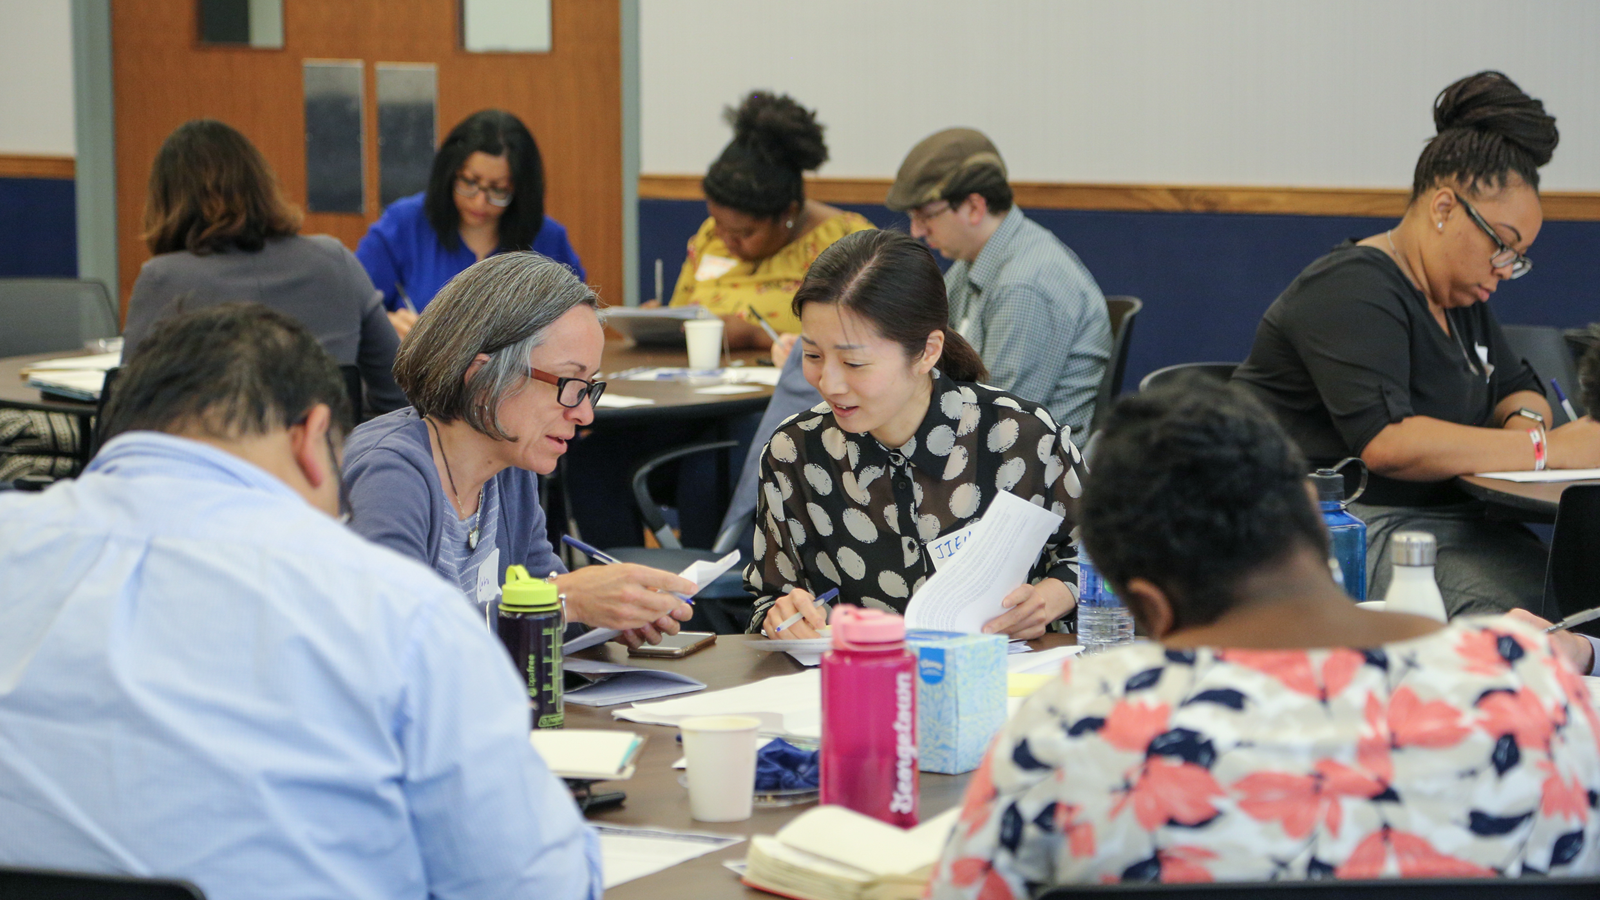 Workshop participants discuss Intergroup Dialogue pedagogy.